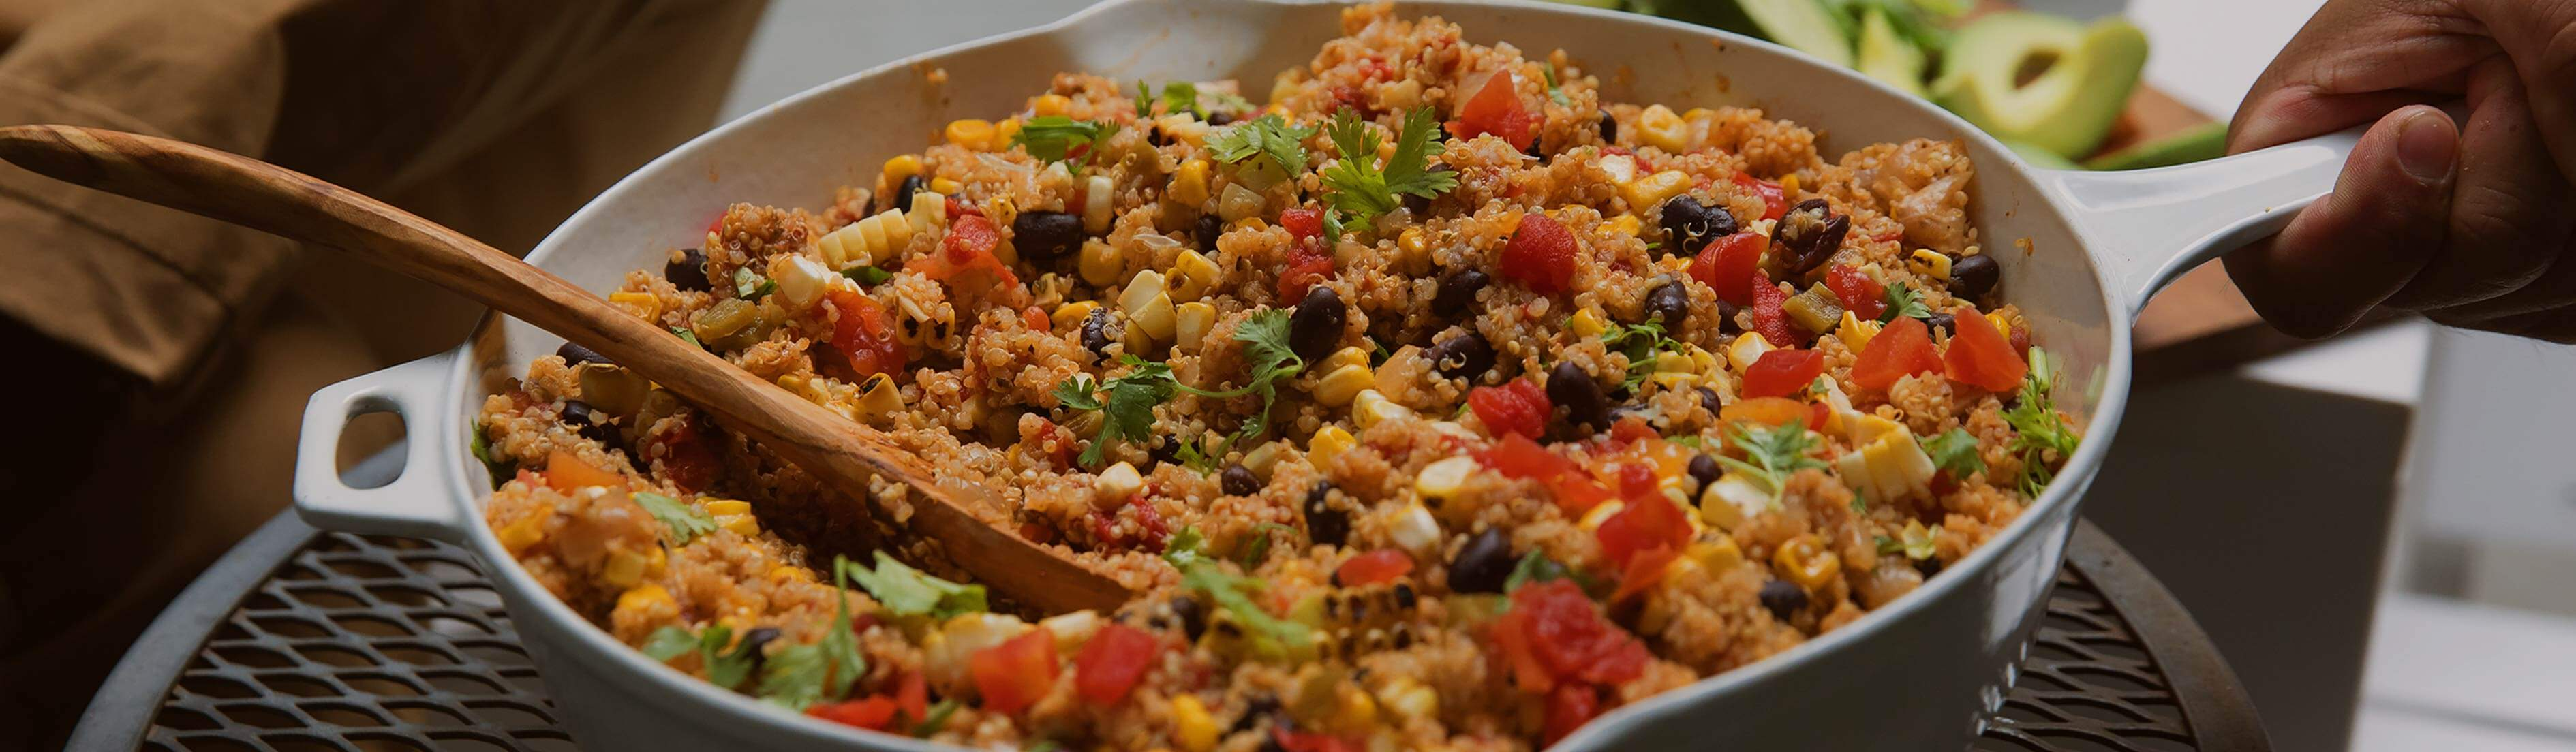 7 Simple Vegetarian Dinner Recipes The Entire Family Will Enjoy